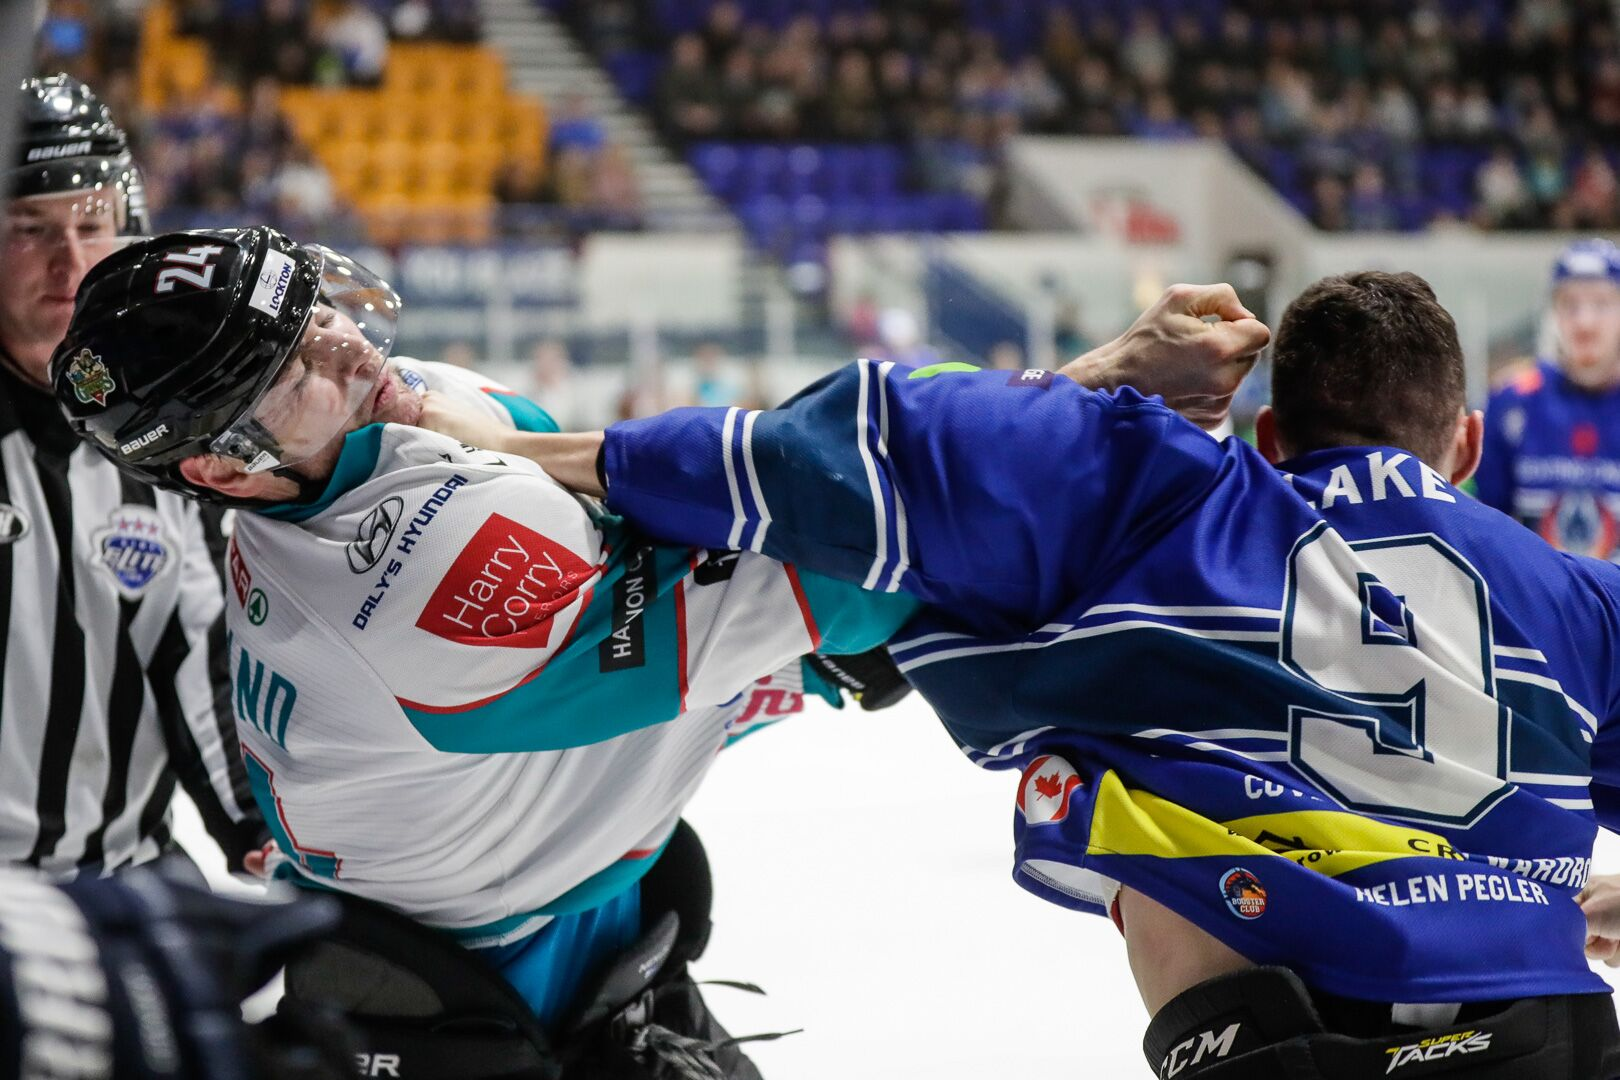 Blaze vs Giants #7